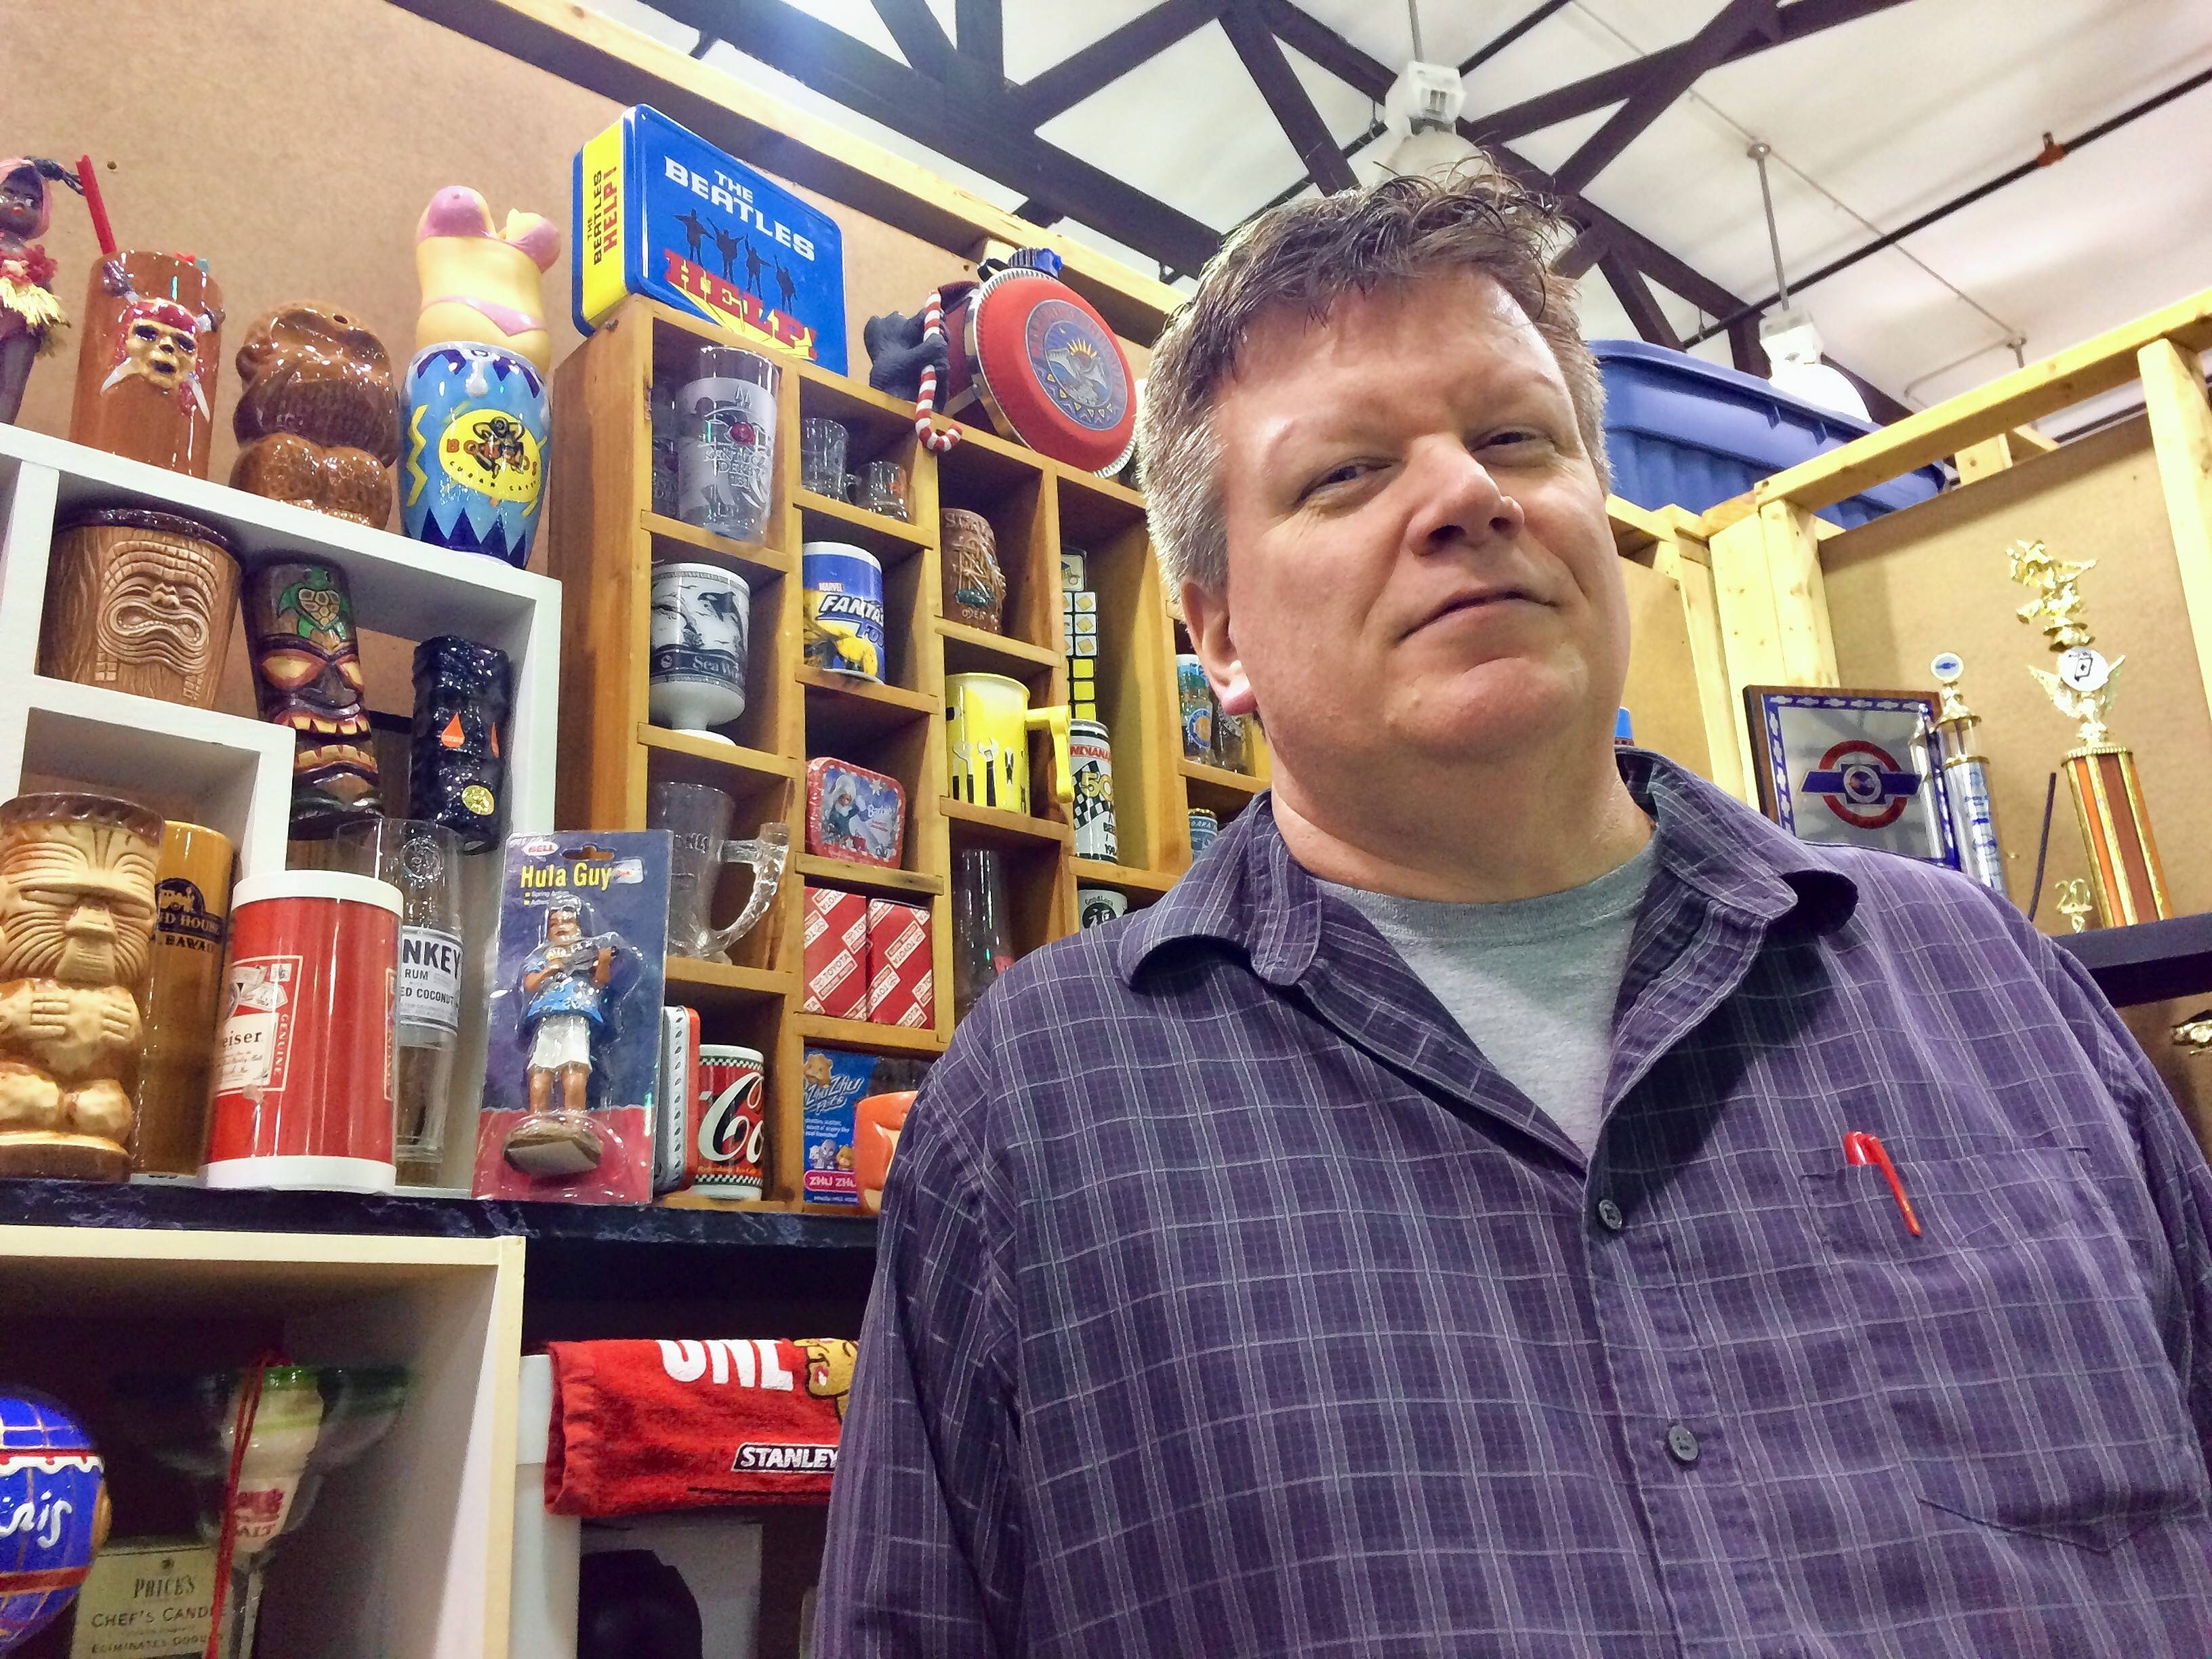 Aurora resident Greg Flamm has been a vendor at the indoor Wolff's Flea Market in Palatine.